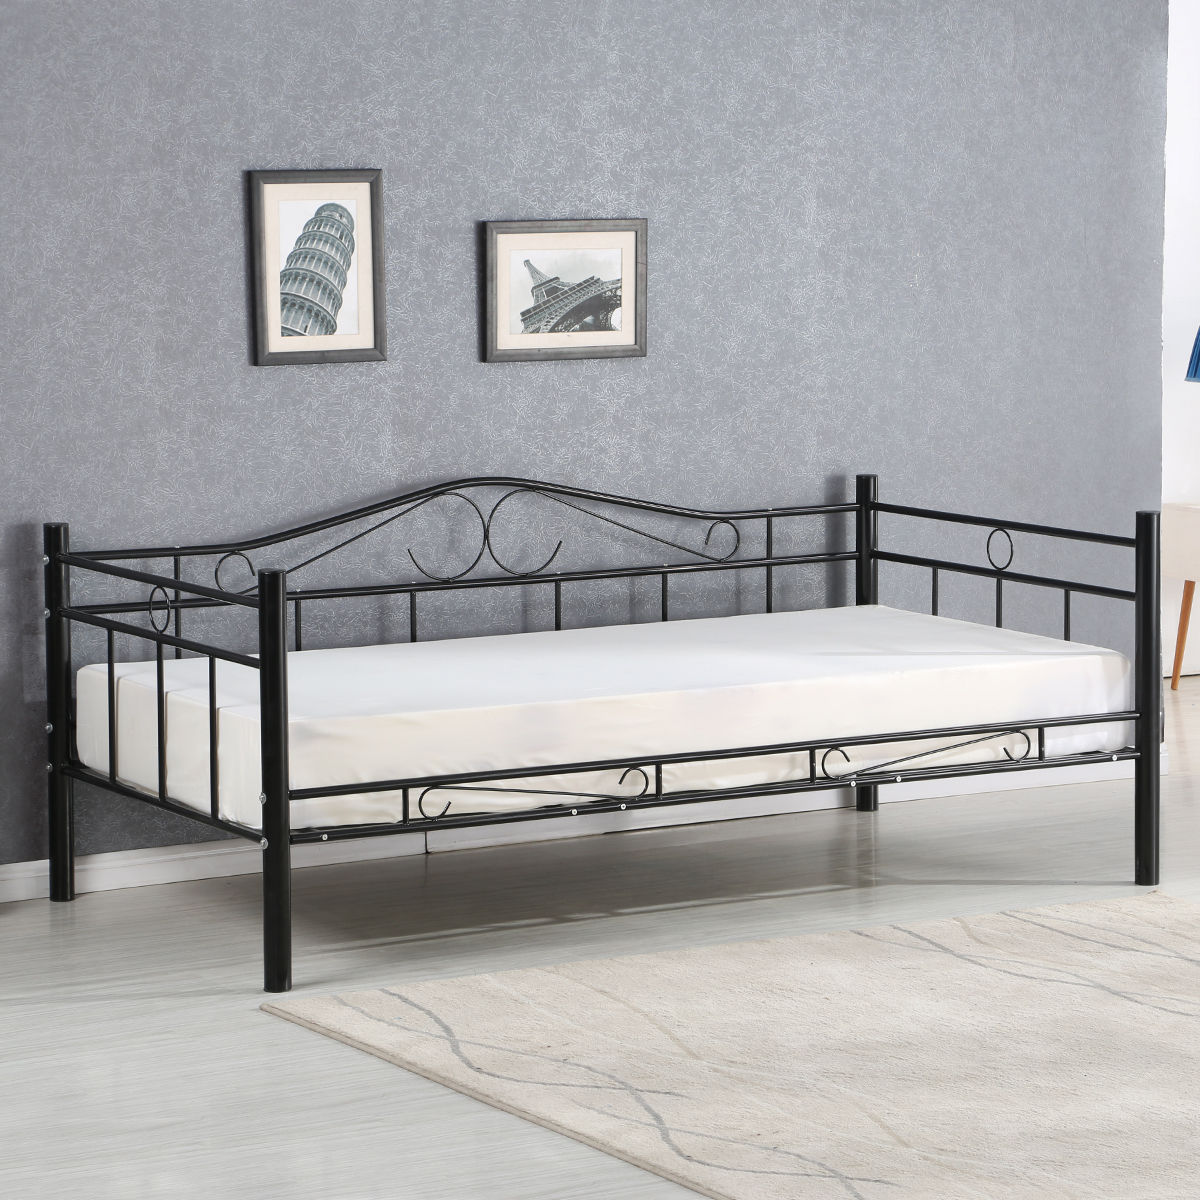 Giantex Twin Size Daybed Sofa Bed Bedroom Modern Metal Steel Bed ...